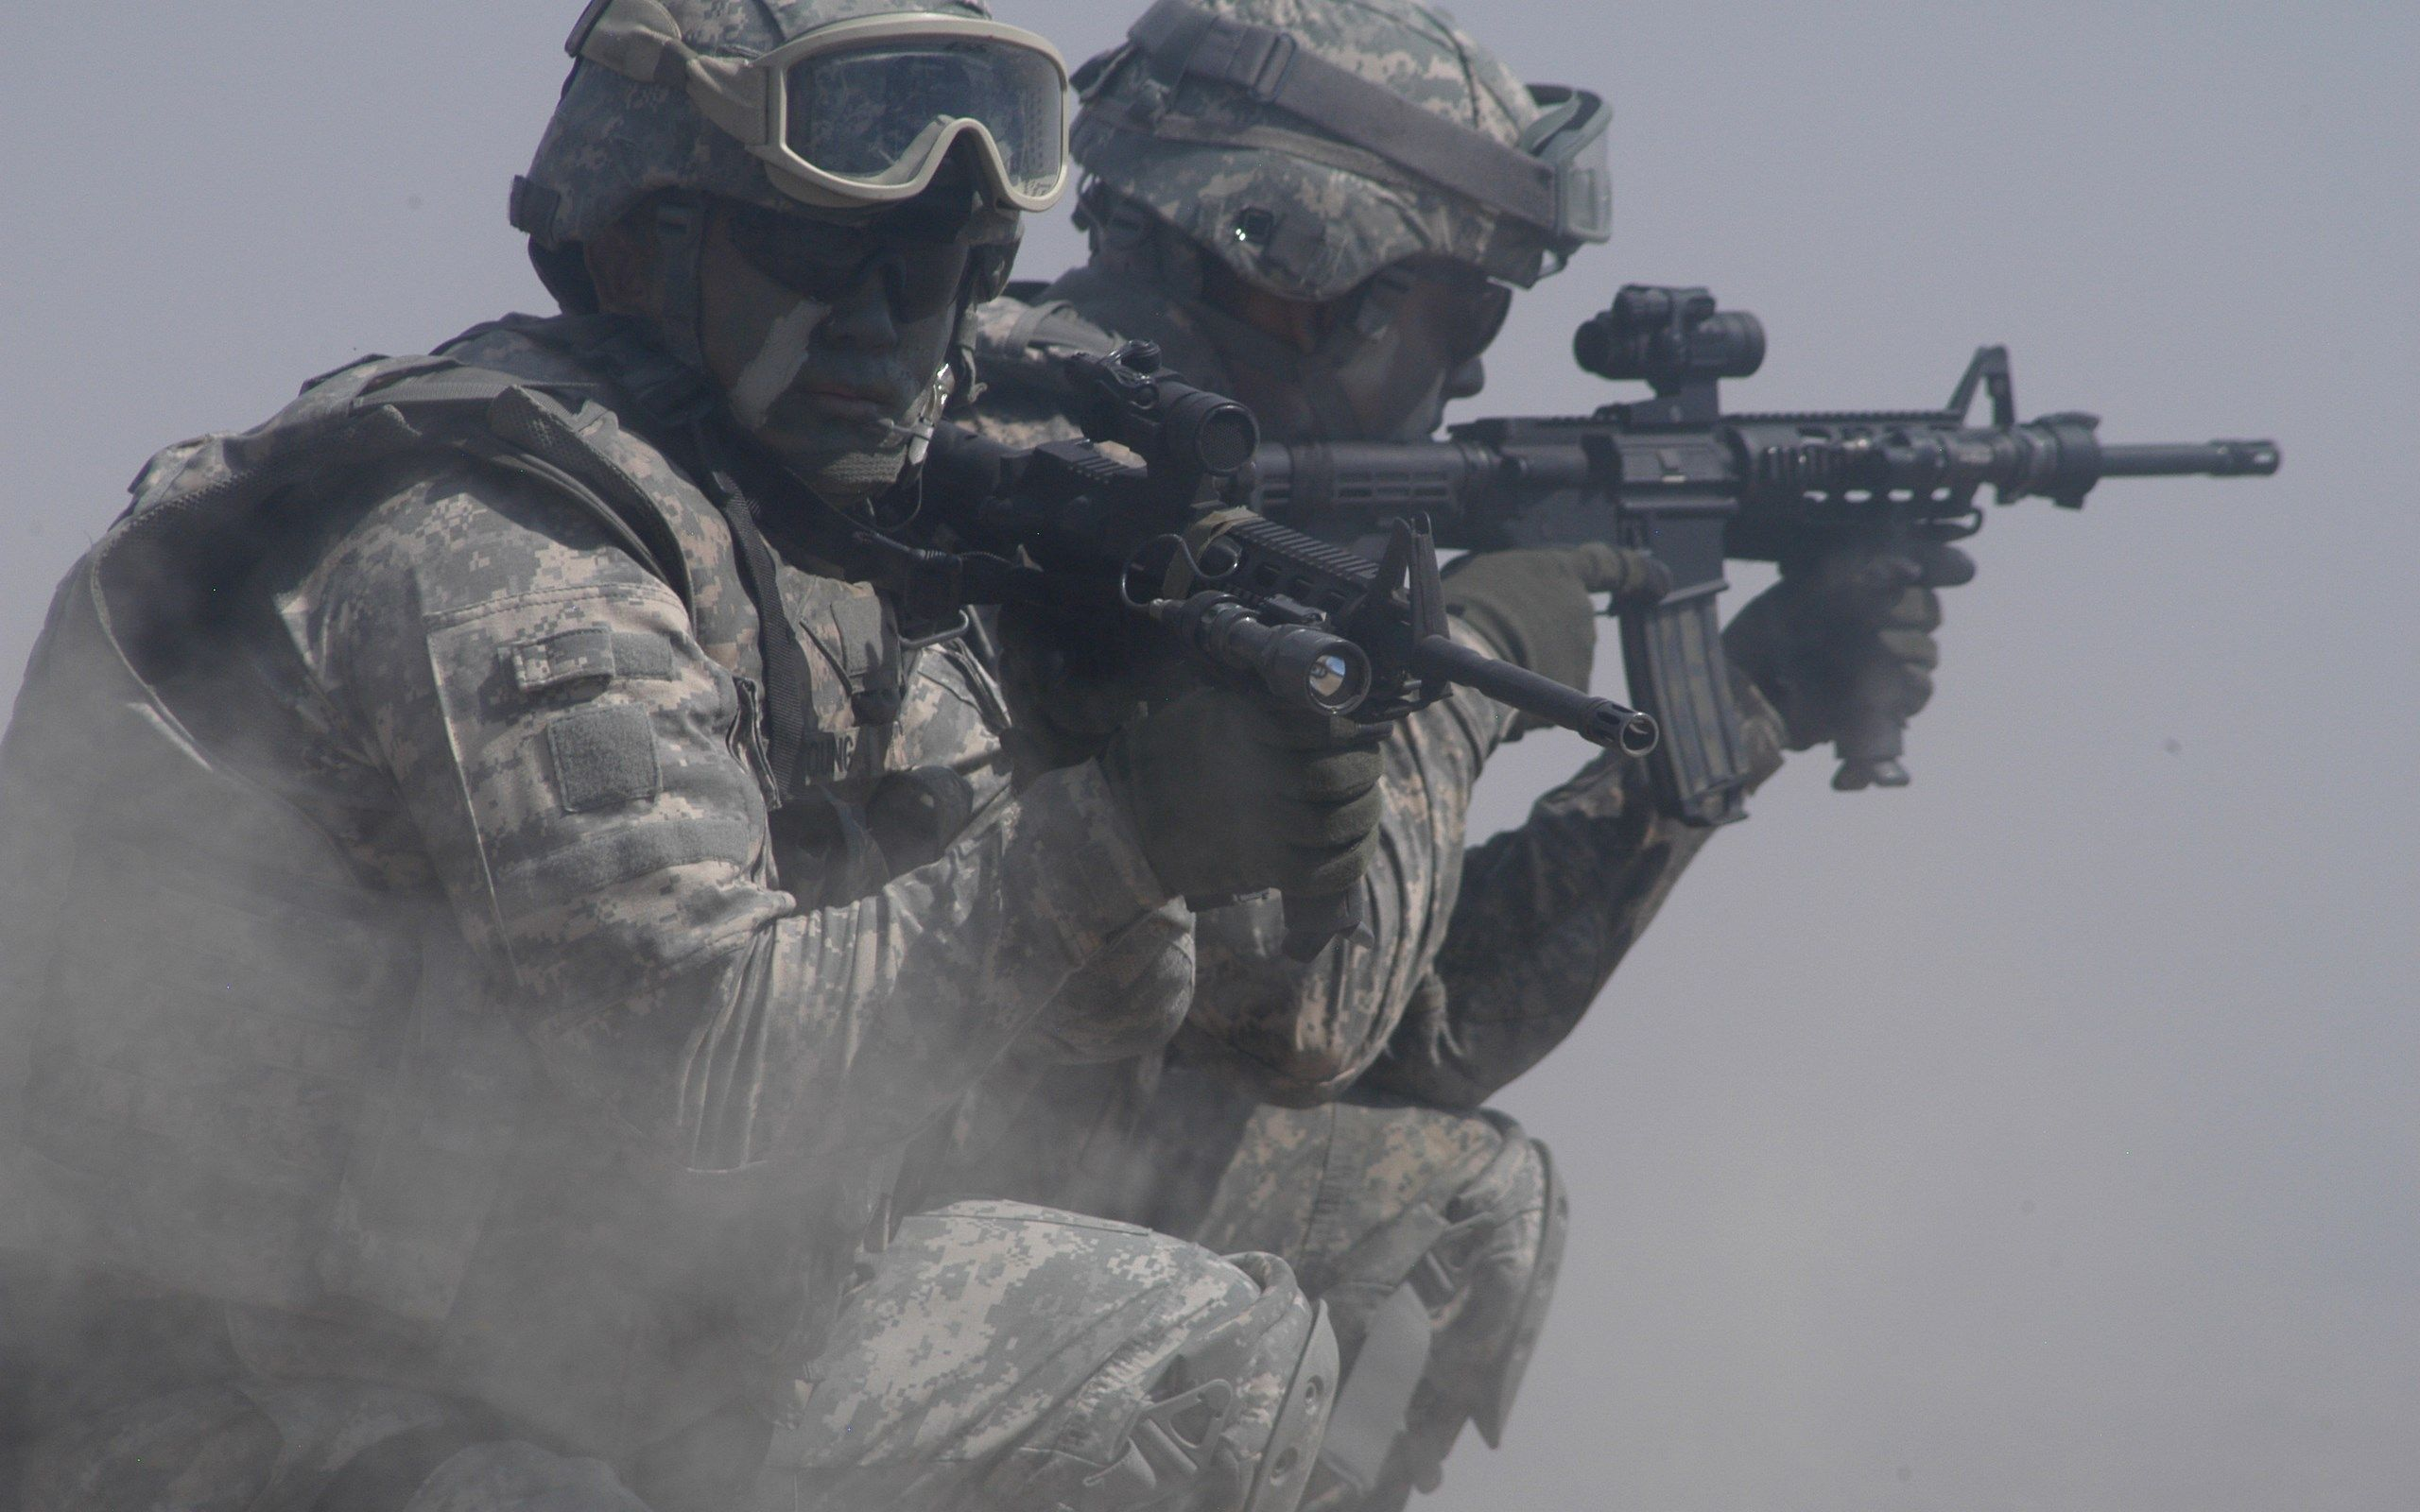 Hd Widescreen Wallpapers Soldier Pic 2560x1600 468 Kb Us Army Soldier Military Wallpaper Army Wallpaper